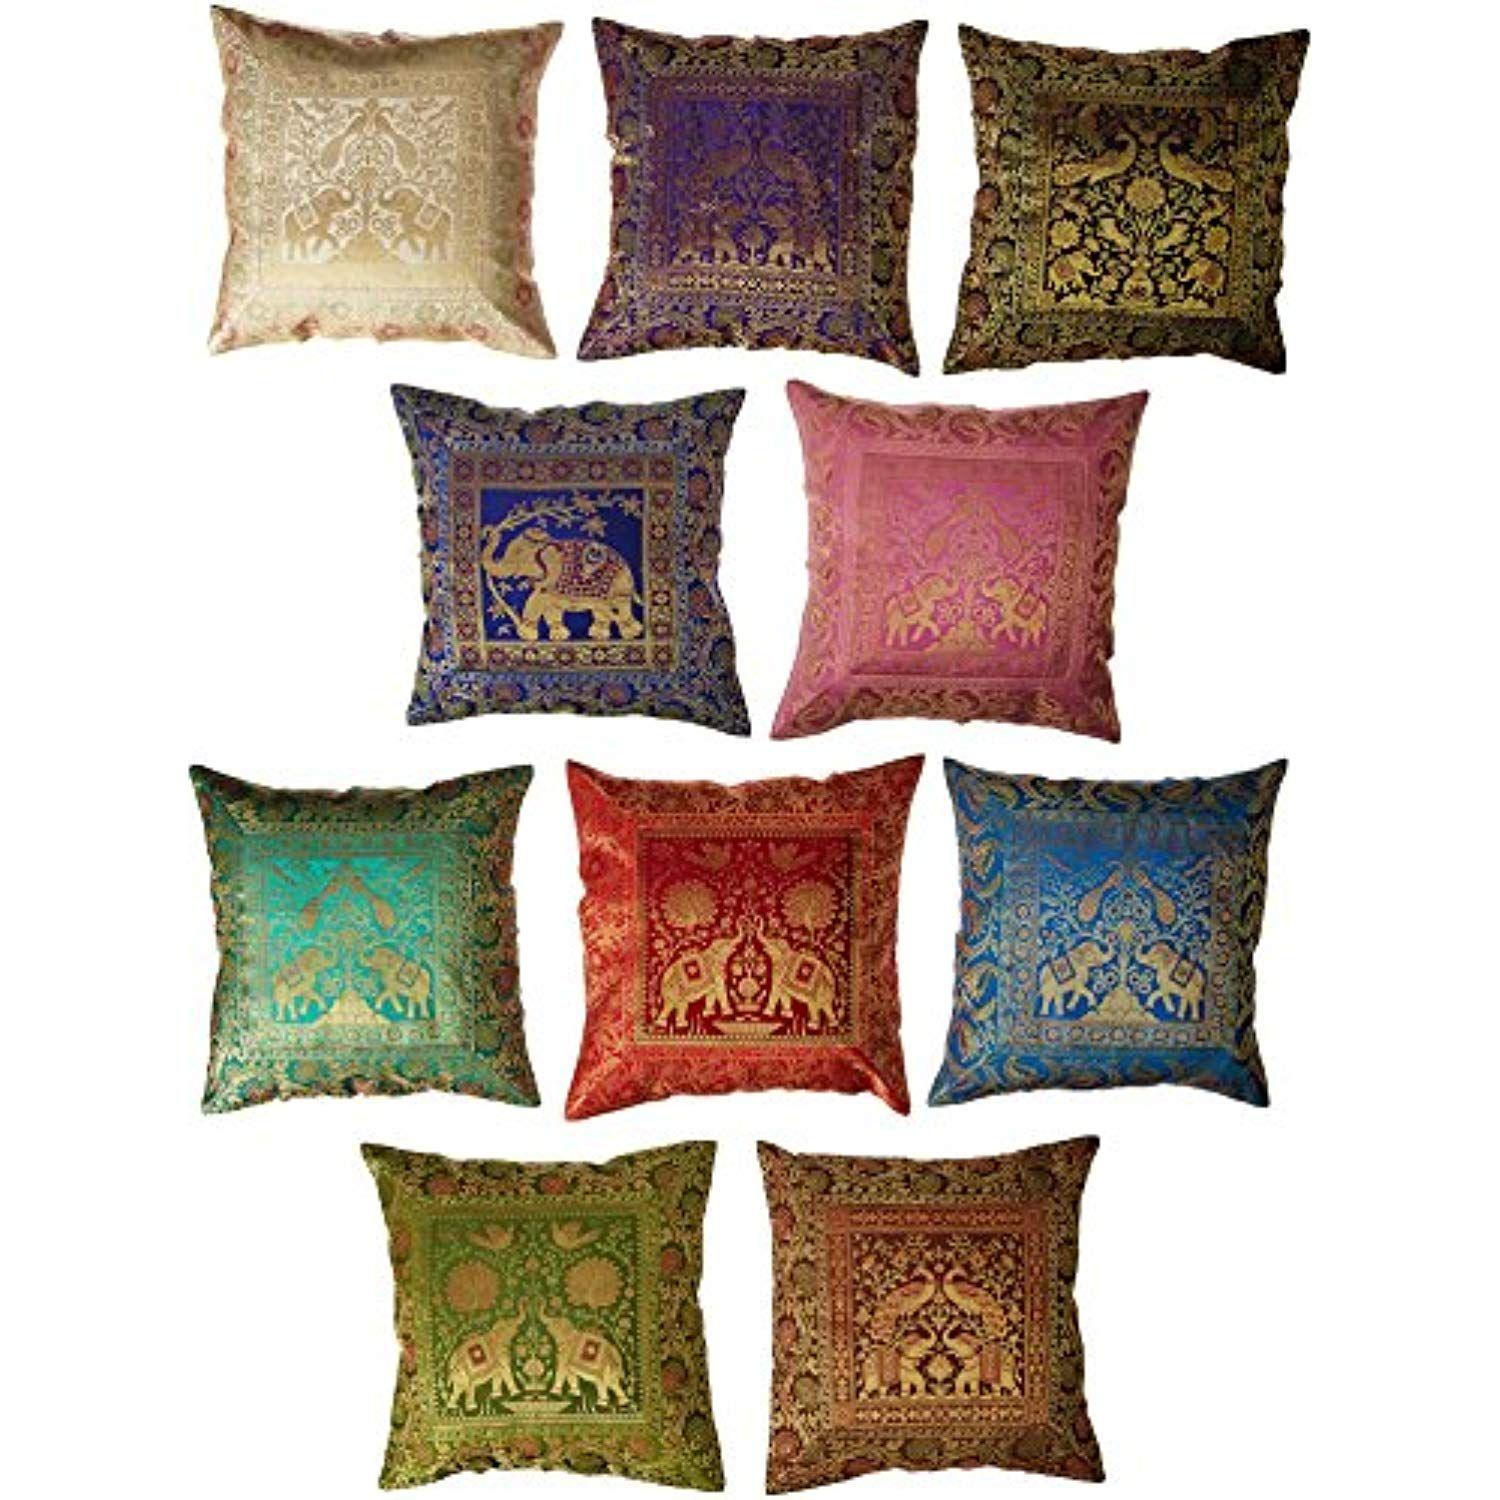 10 Pc Lot Square Silk Home Decor Cushion Cover Indian Silk Brocade Pillow Cover Handmade Banarsi Pillow Cover 16 X 16 Inch Daybed Pillows Pillows Cushions